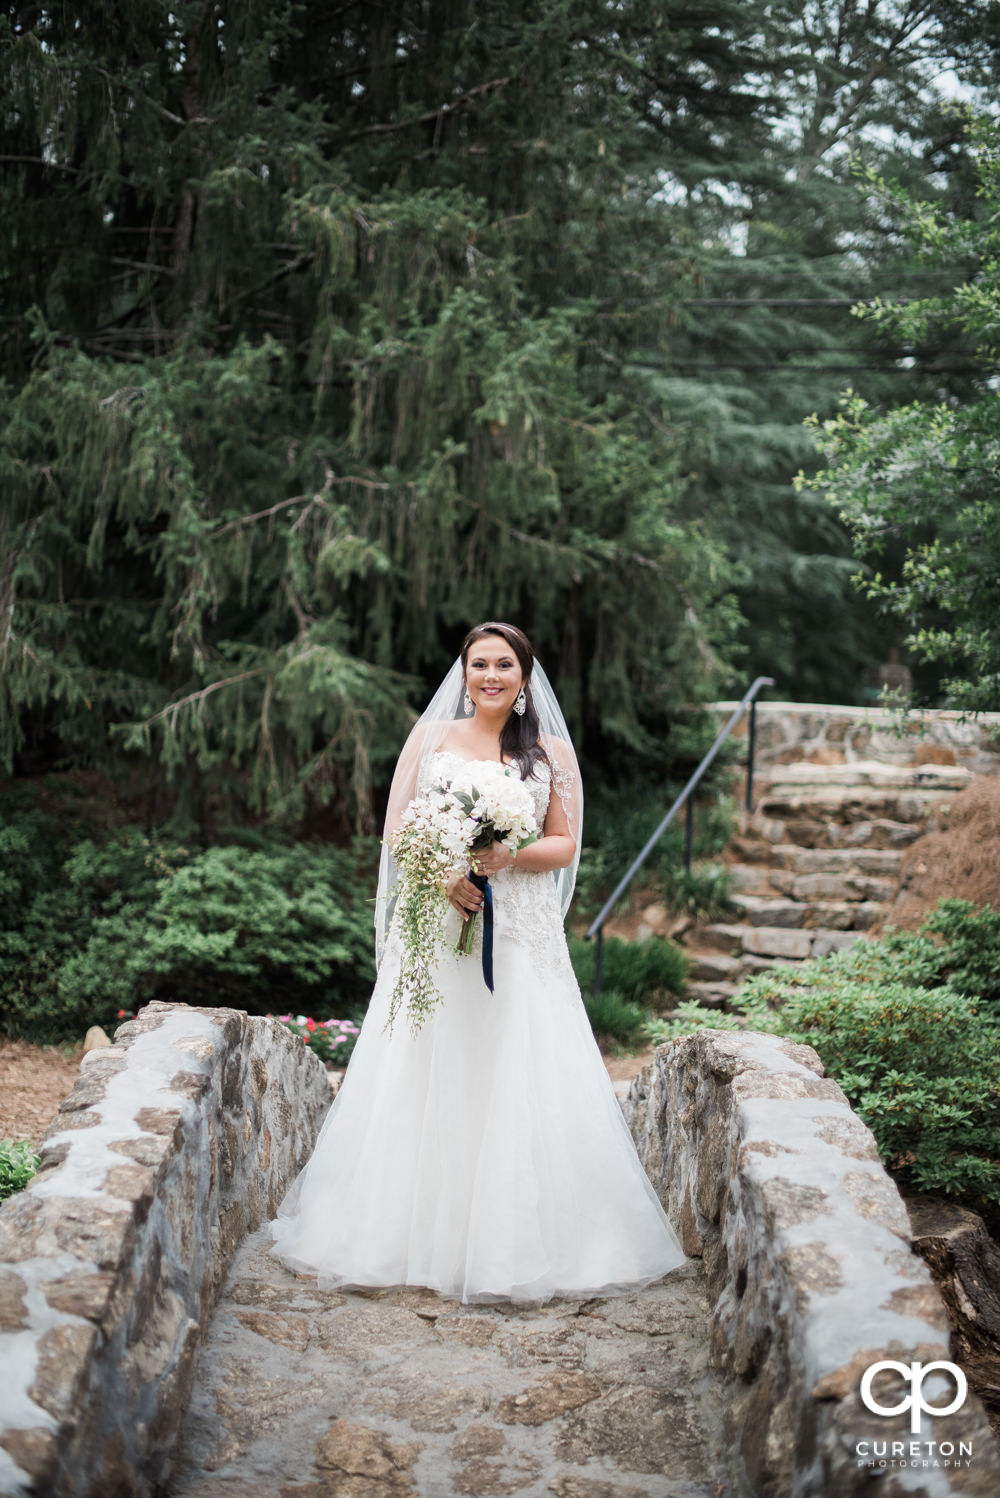 Bride standing on the stone bridge over the Reedy River at the Rock Quarry Garden in downtown Greenville.